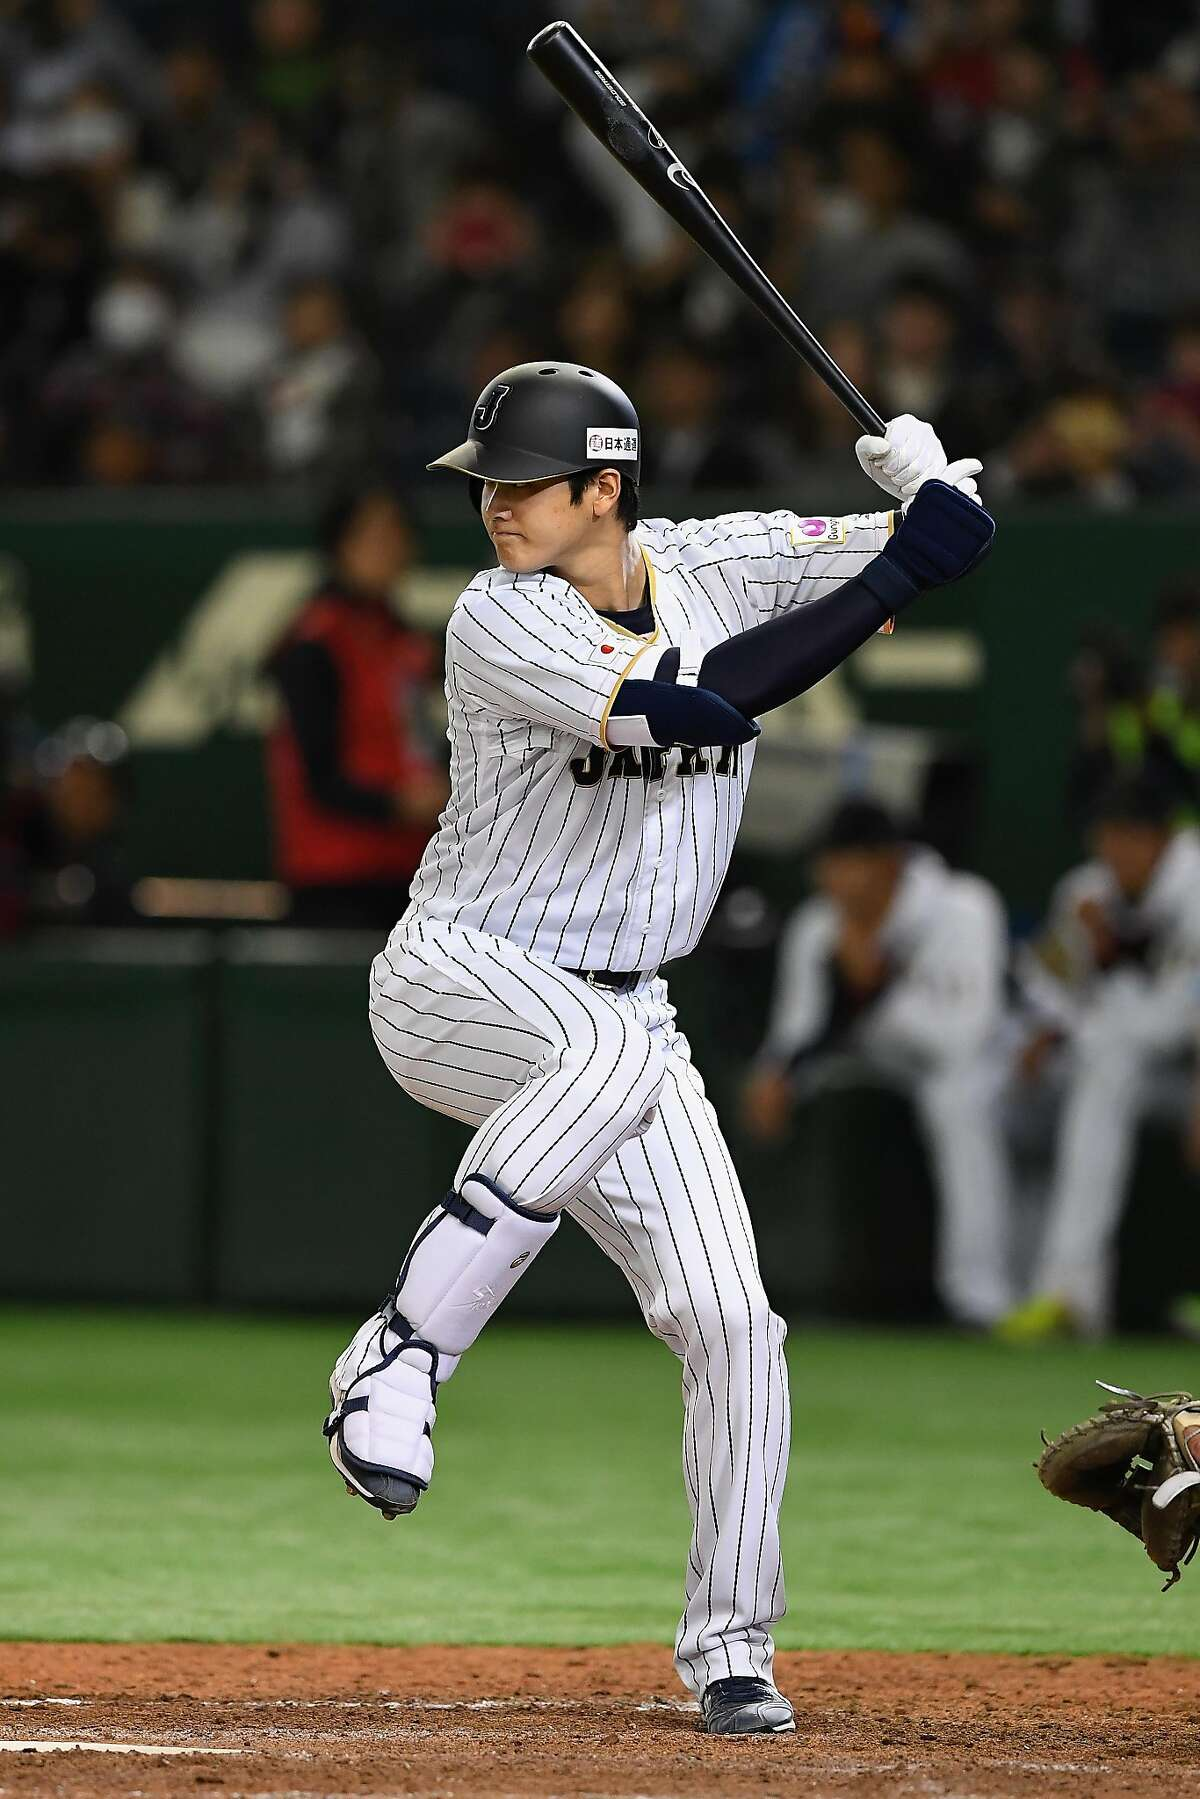 Shohei Ohtani bats during the international friendly match between Japan and Mexico at the Tokyo Dome on November 10, 2016.